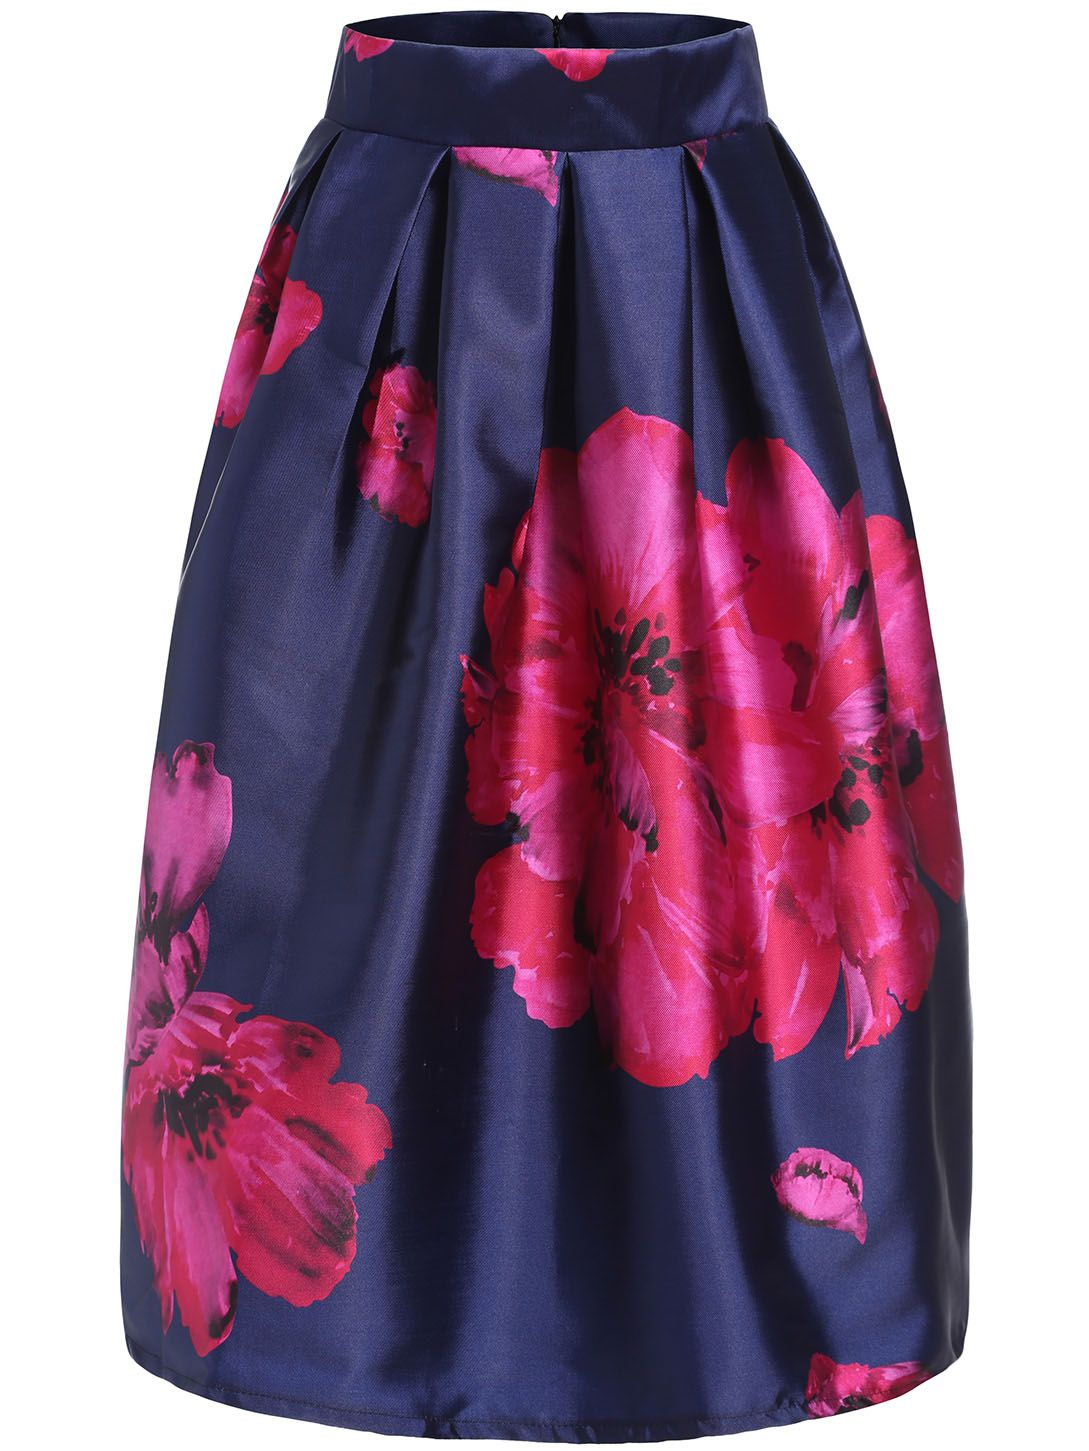 0cd5c205f Blue+Apricot+Plum+Flower+Print+Flare+Skirt+23.67 | My Style in 2019 ...